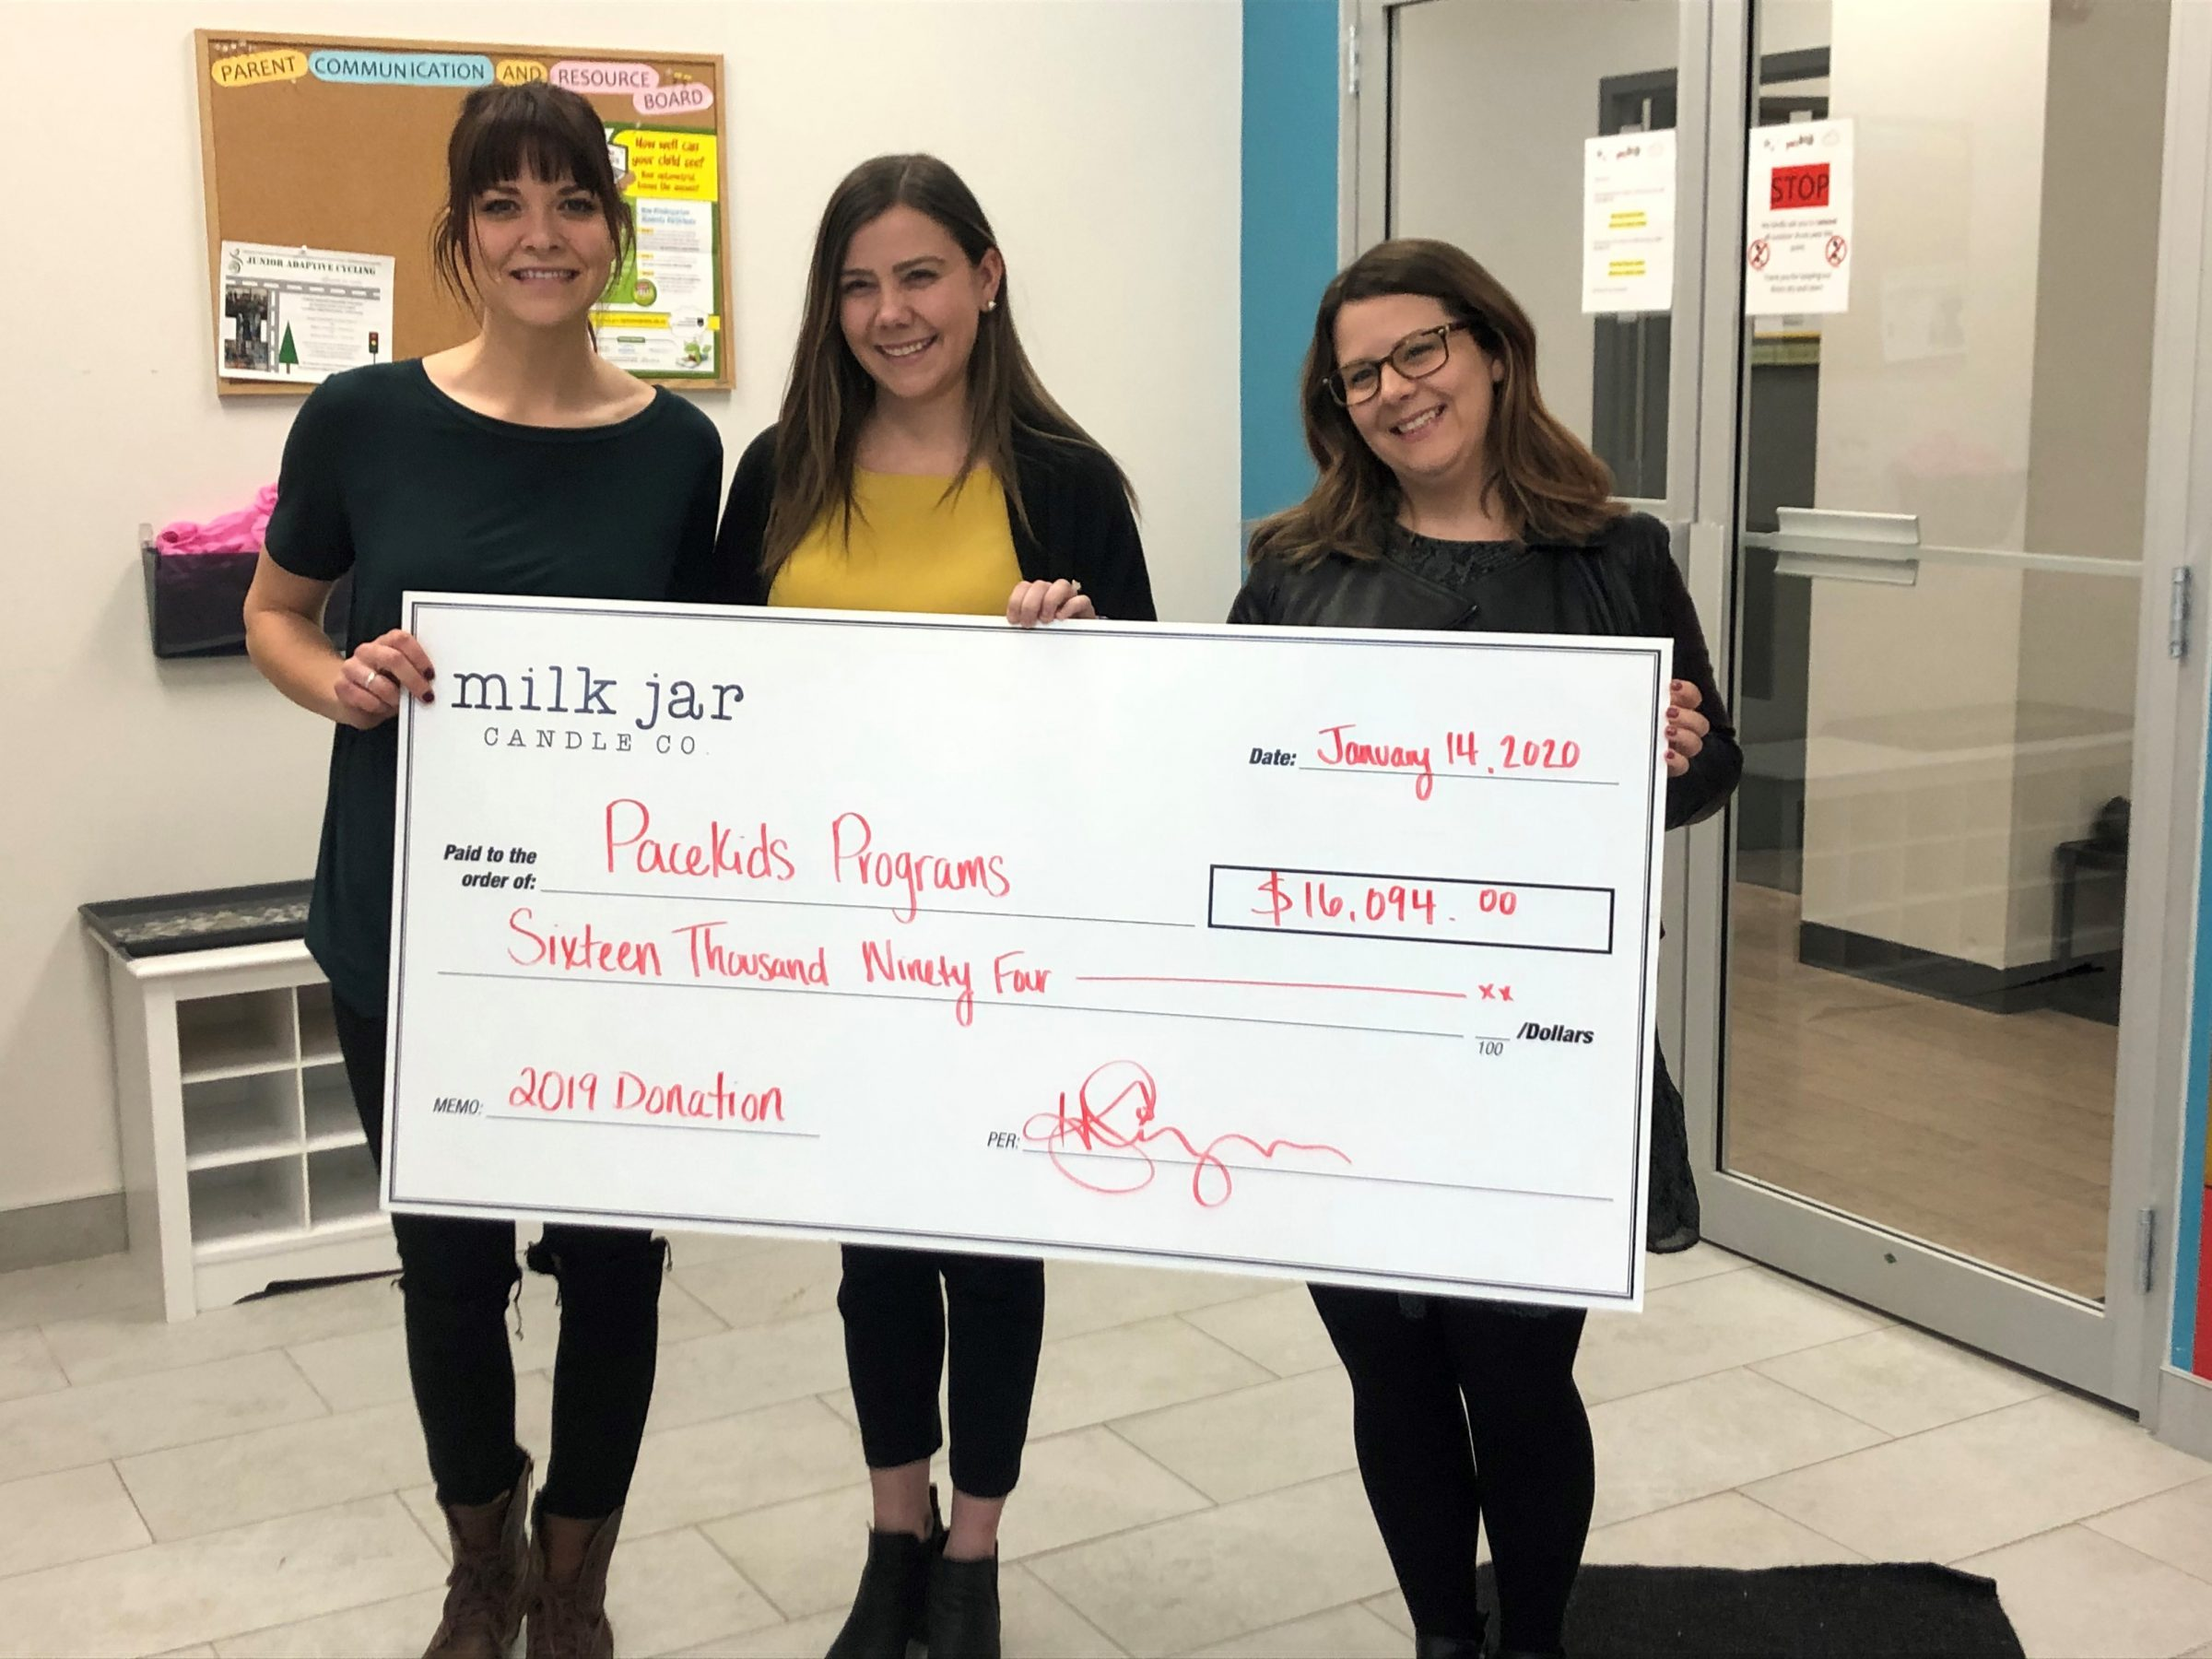 Milk Jar Candle Co & Pacekids Employees hold cheque for special needs program donation